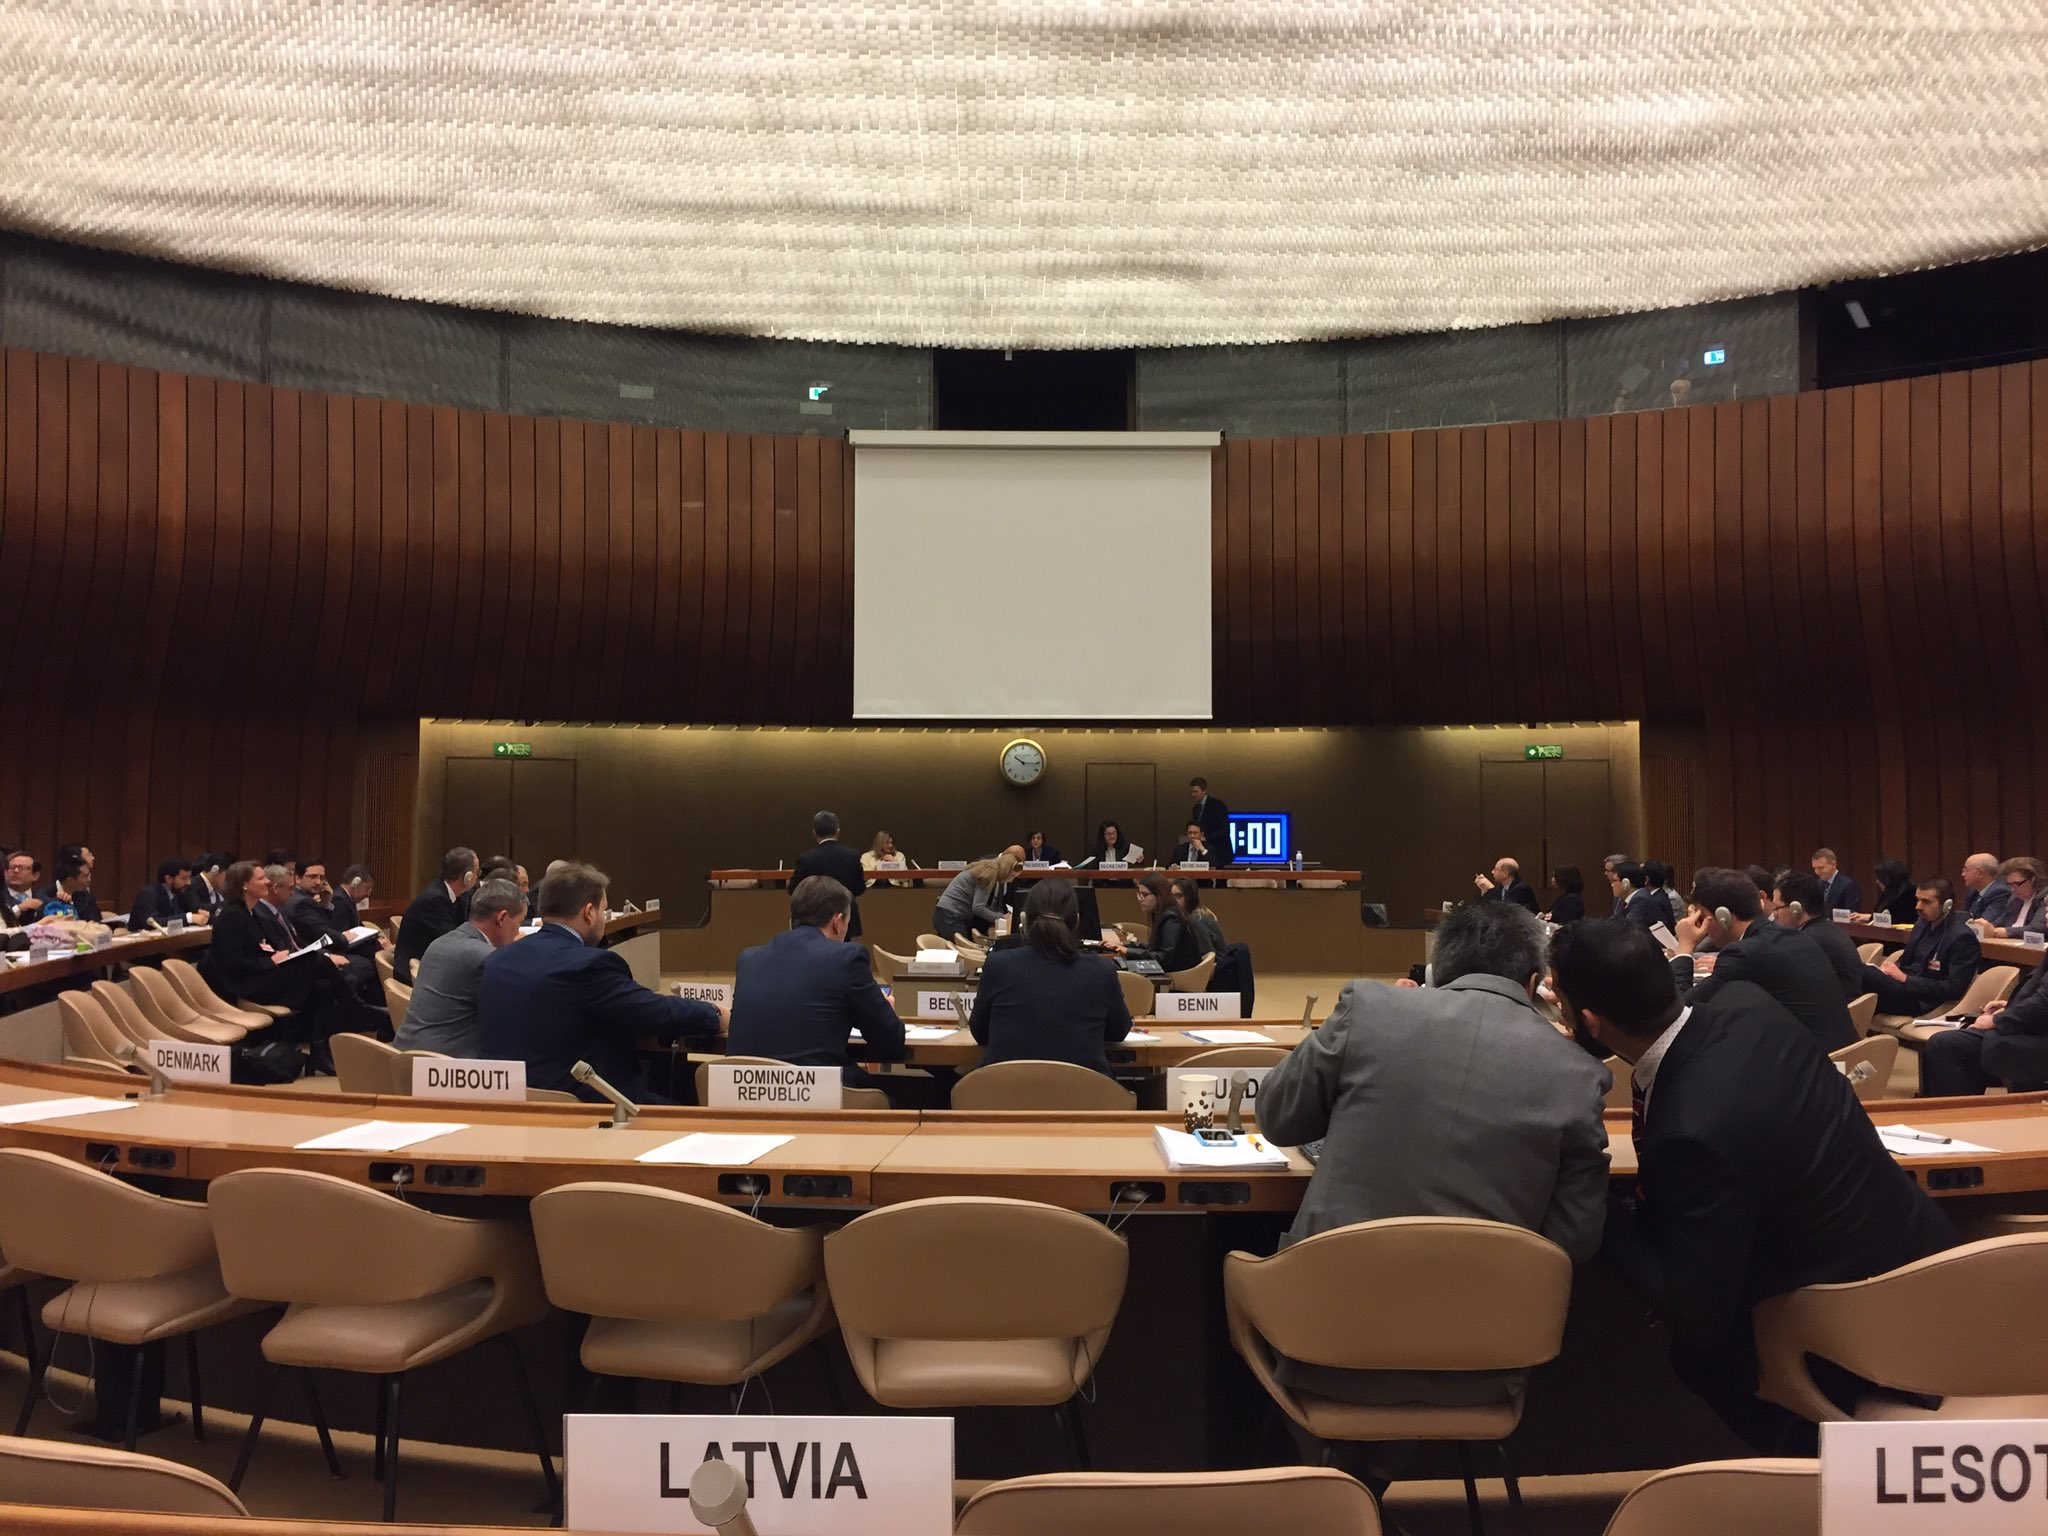 Work of 5th #CCWUN Review Conference divided into Main Committee I chaired by UK, Main Committee II on killer robots chaired by Rep. Moldova https://t.co/IgX87wVYmb